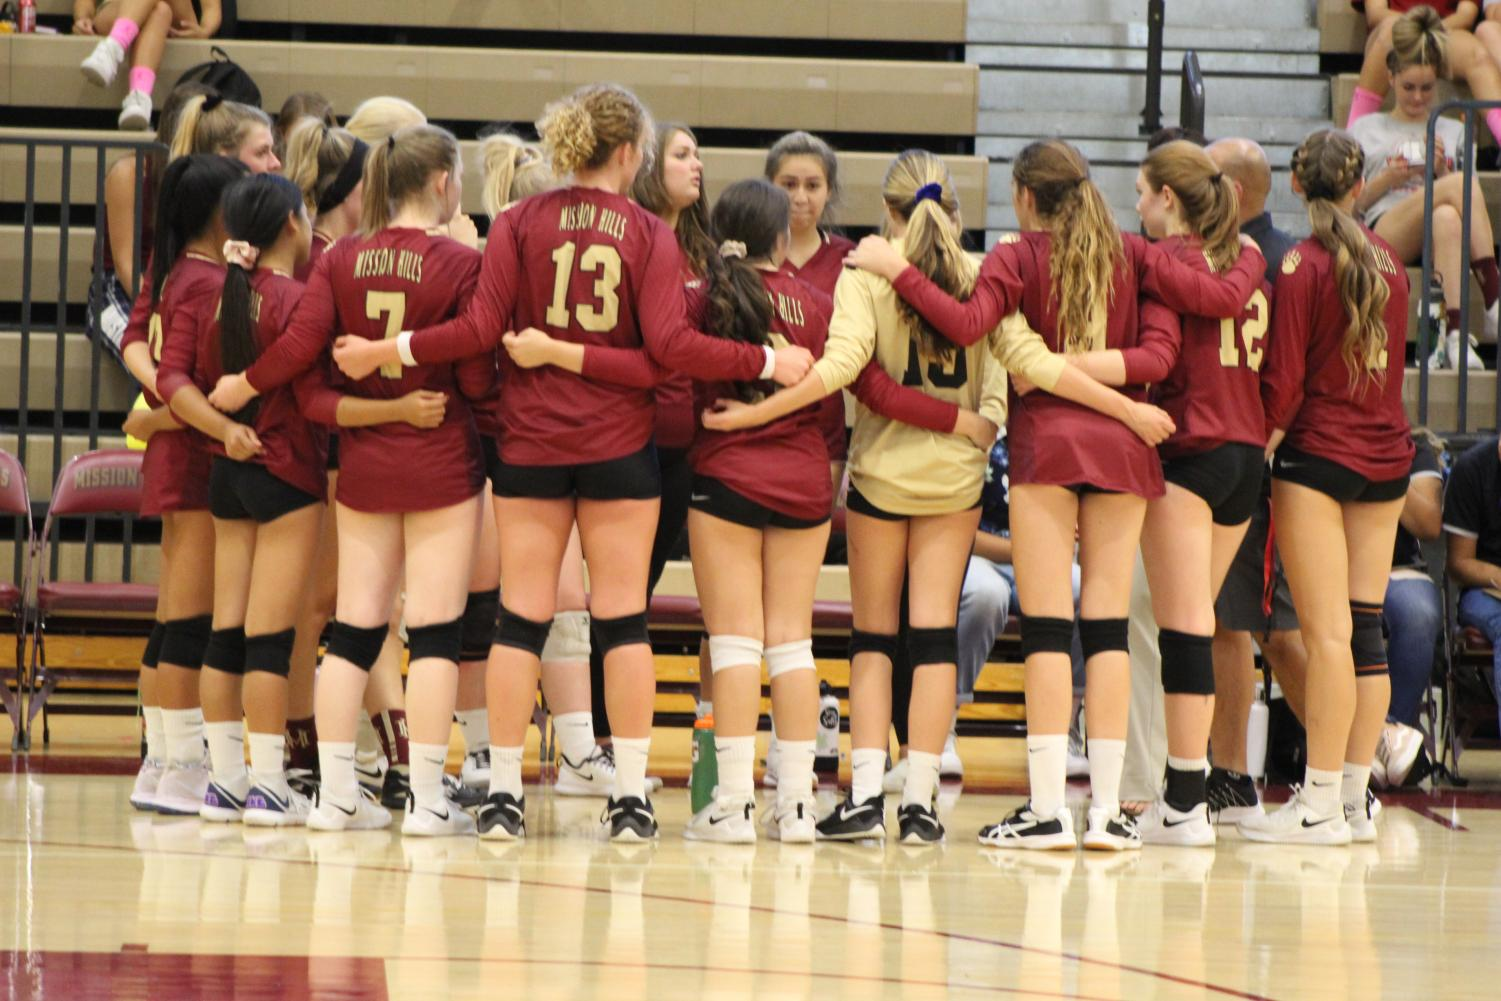 The varsity volleyball girls embrace as a team and prepare to head on the court for their game against La Costa Canyon.